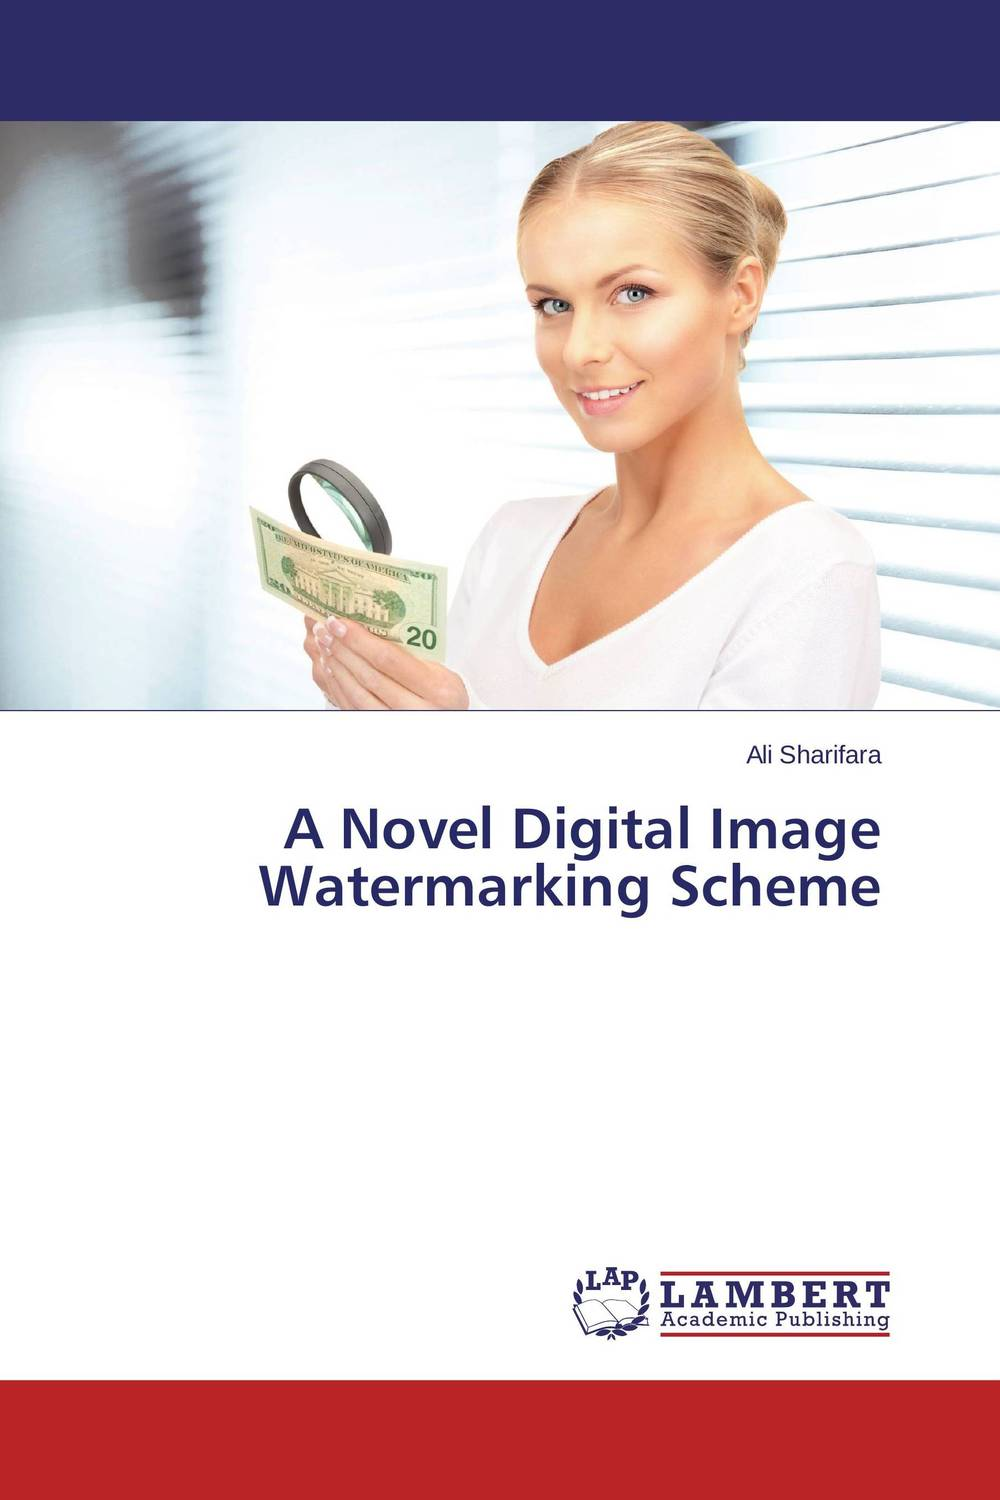 A Novel Digital Image Watermarking Scheme an introduction to digital image watermarking